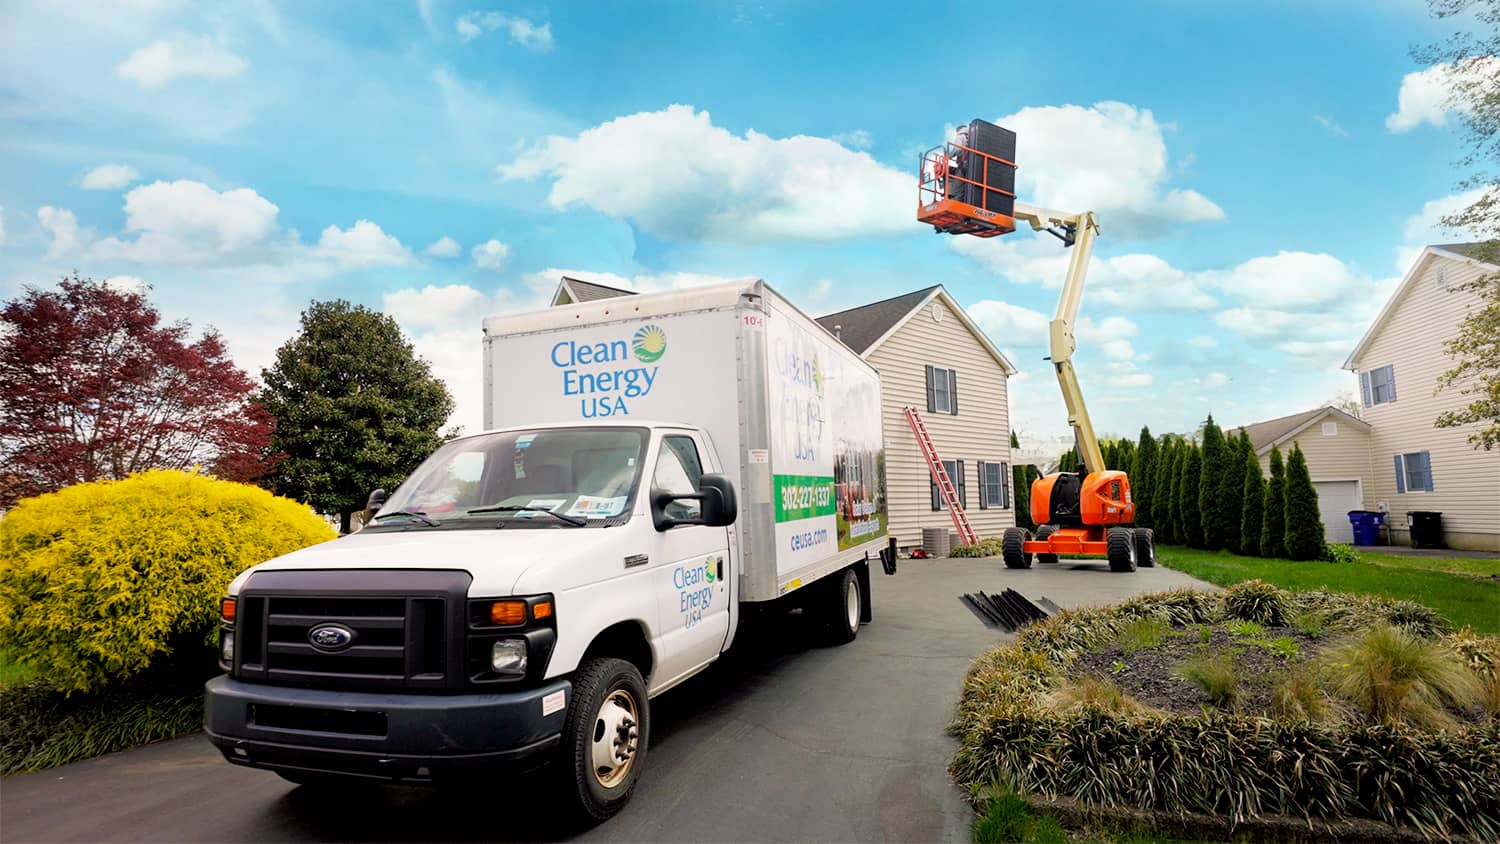 Clean Energy USA Truck with crane in background installing solar panel on residential roof